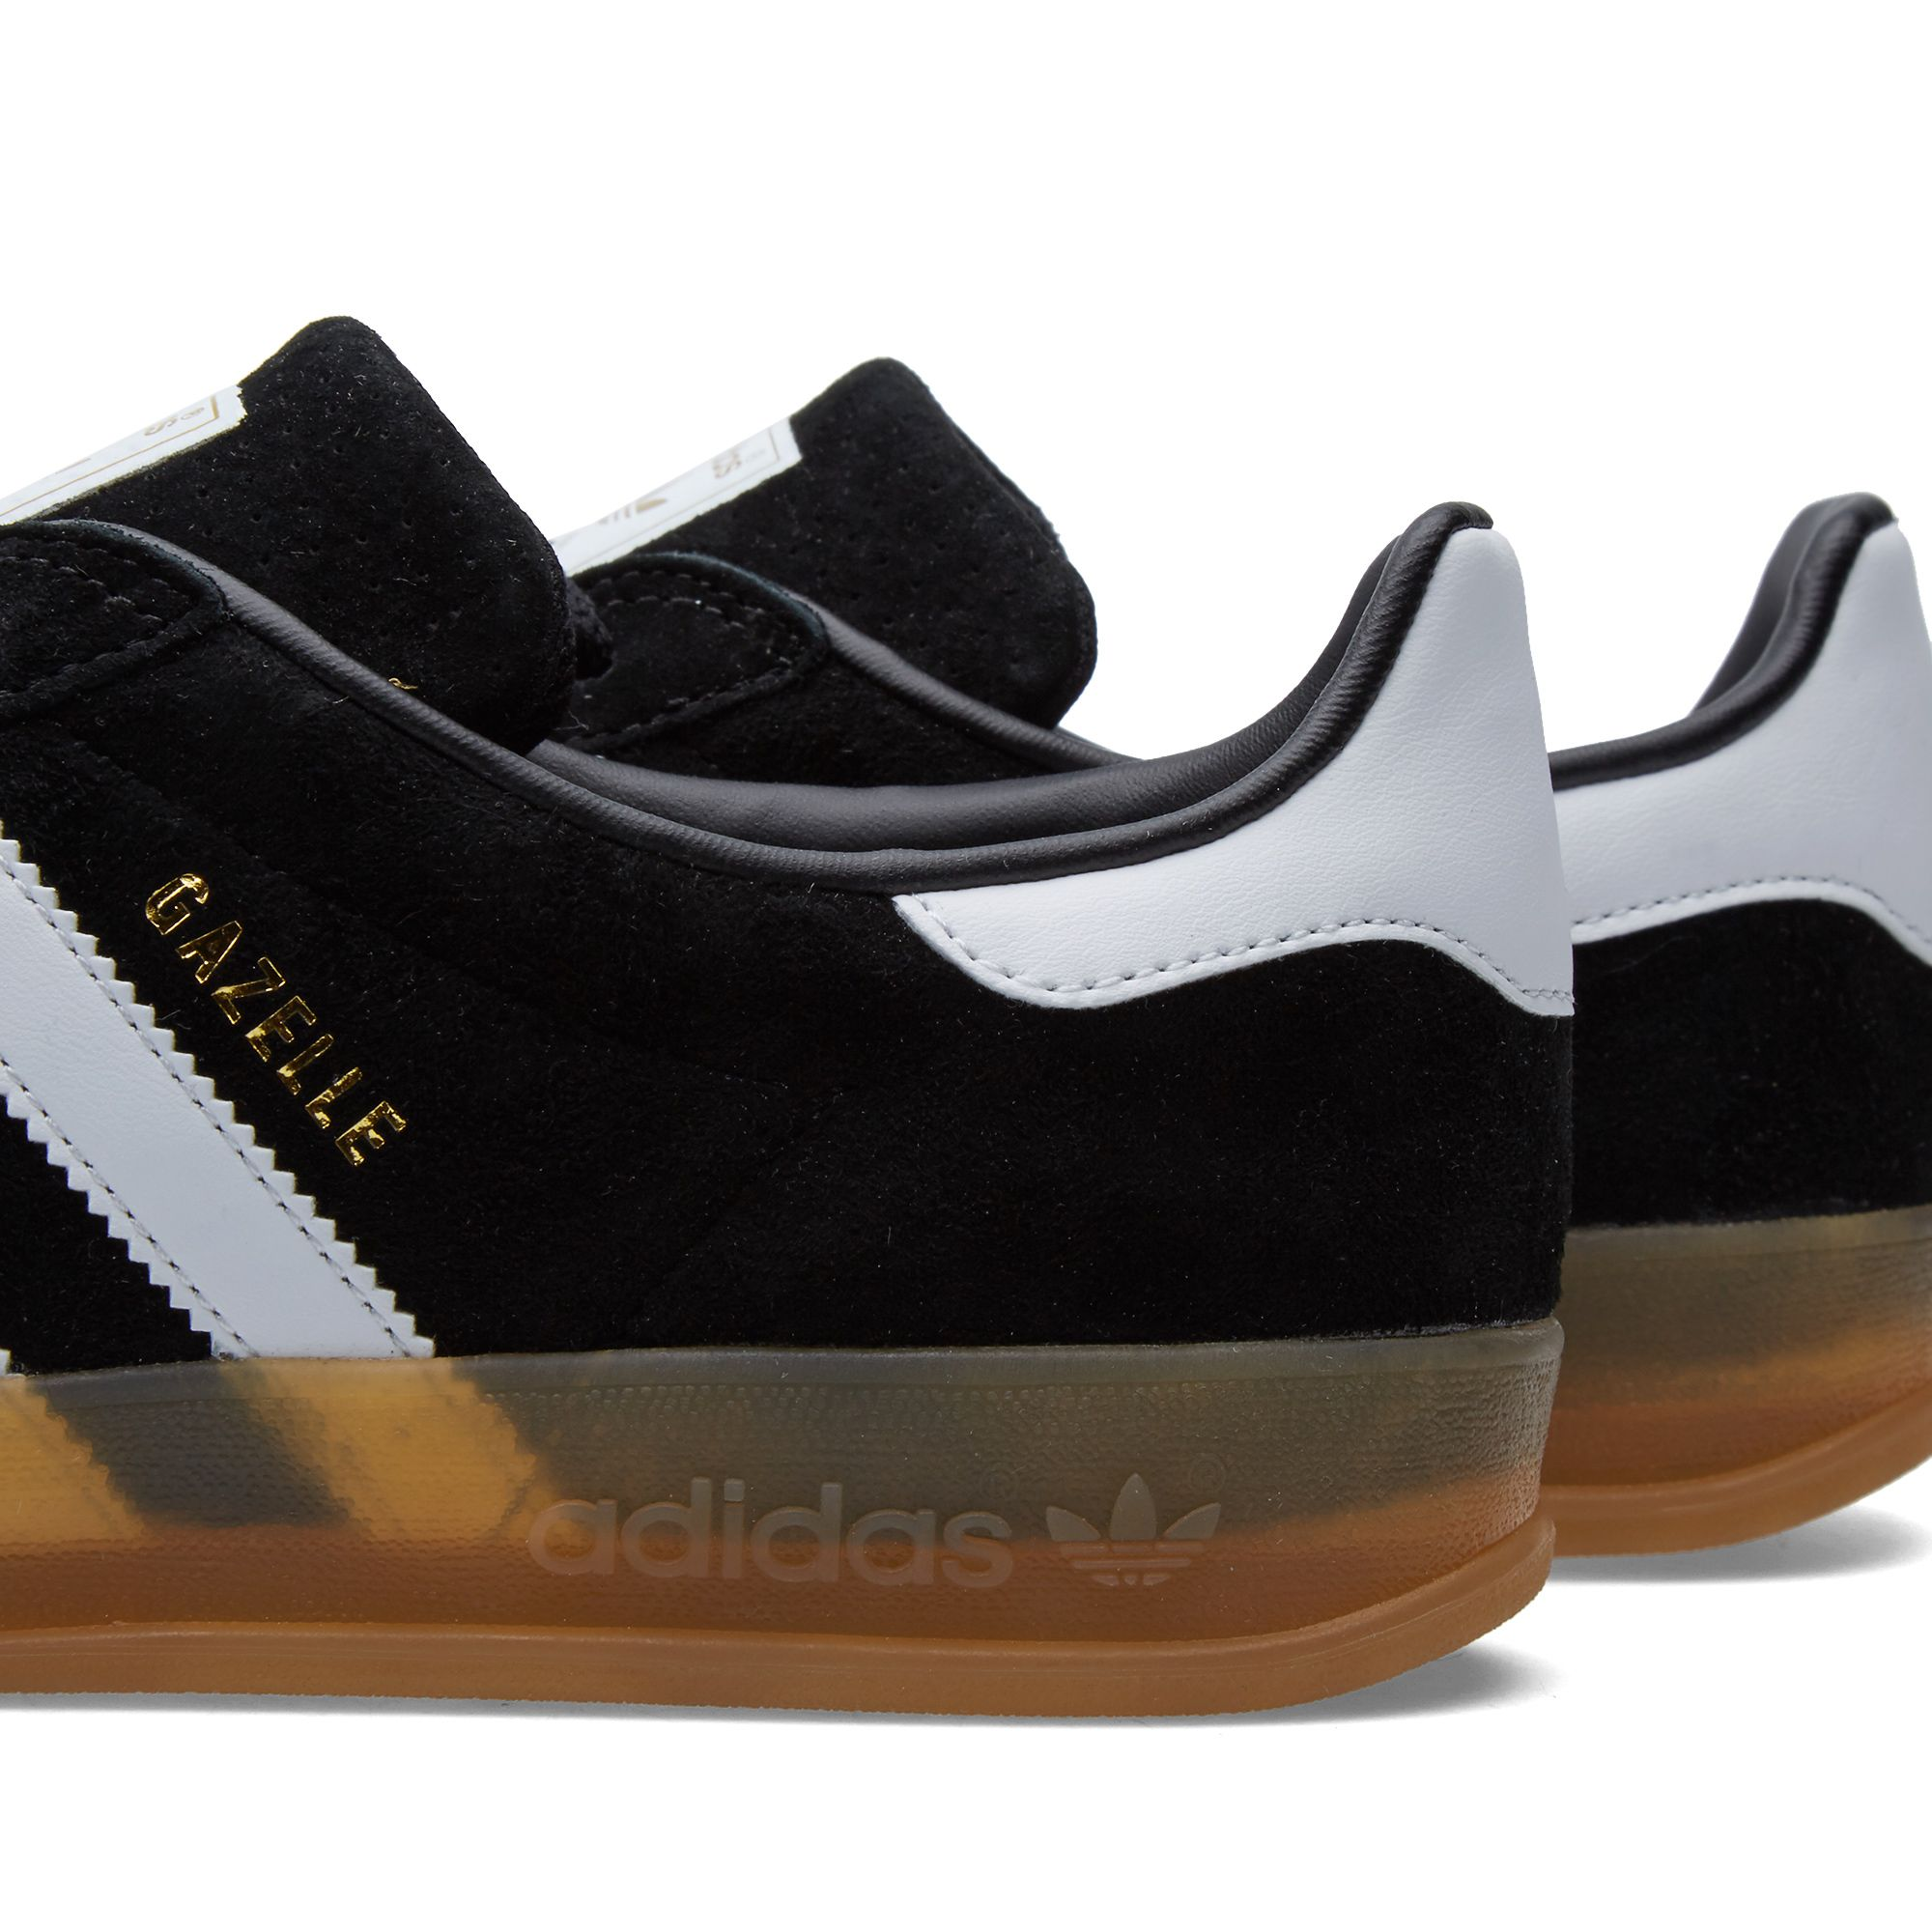 best website d9a15 57def Adidas Gazelle Black Gum Sole